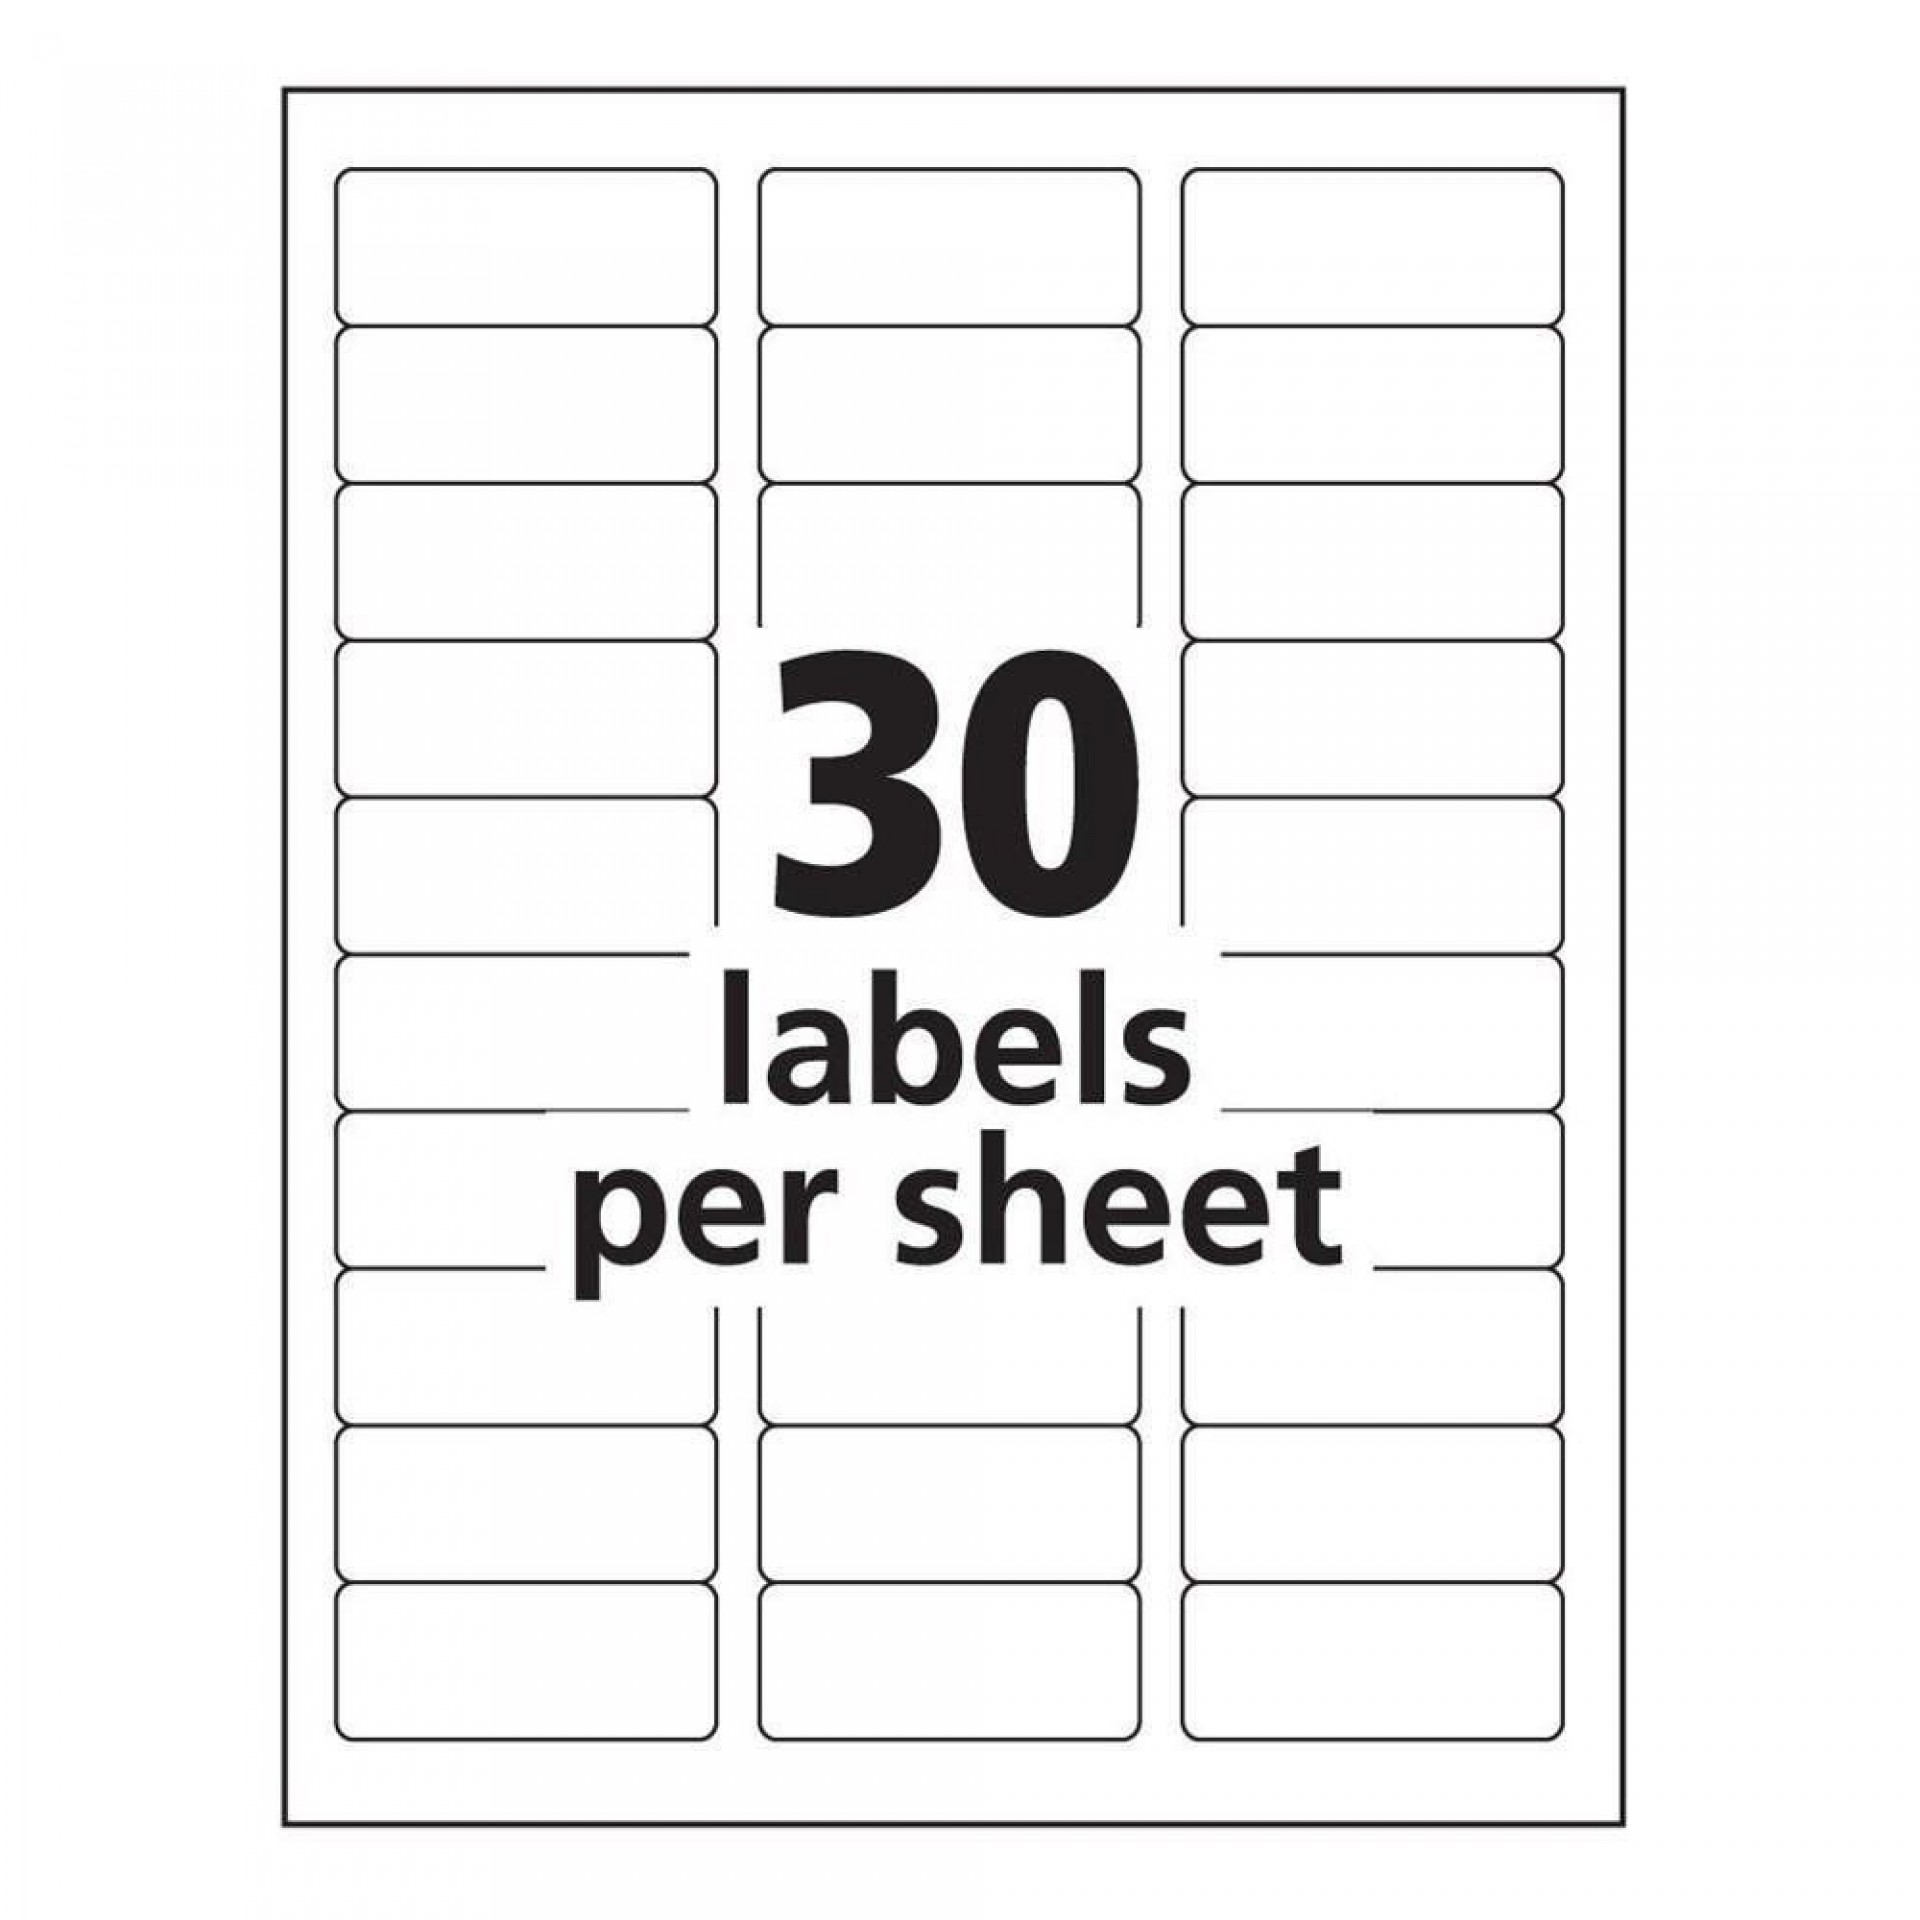 003 Imposing Free Printable Return Addres Label Template High Definition  Templates Christma1920